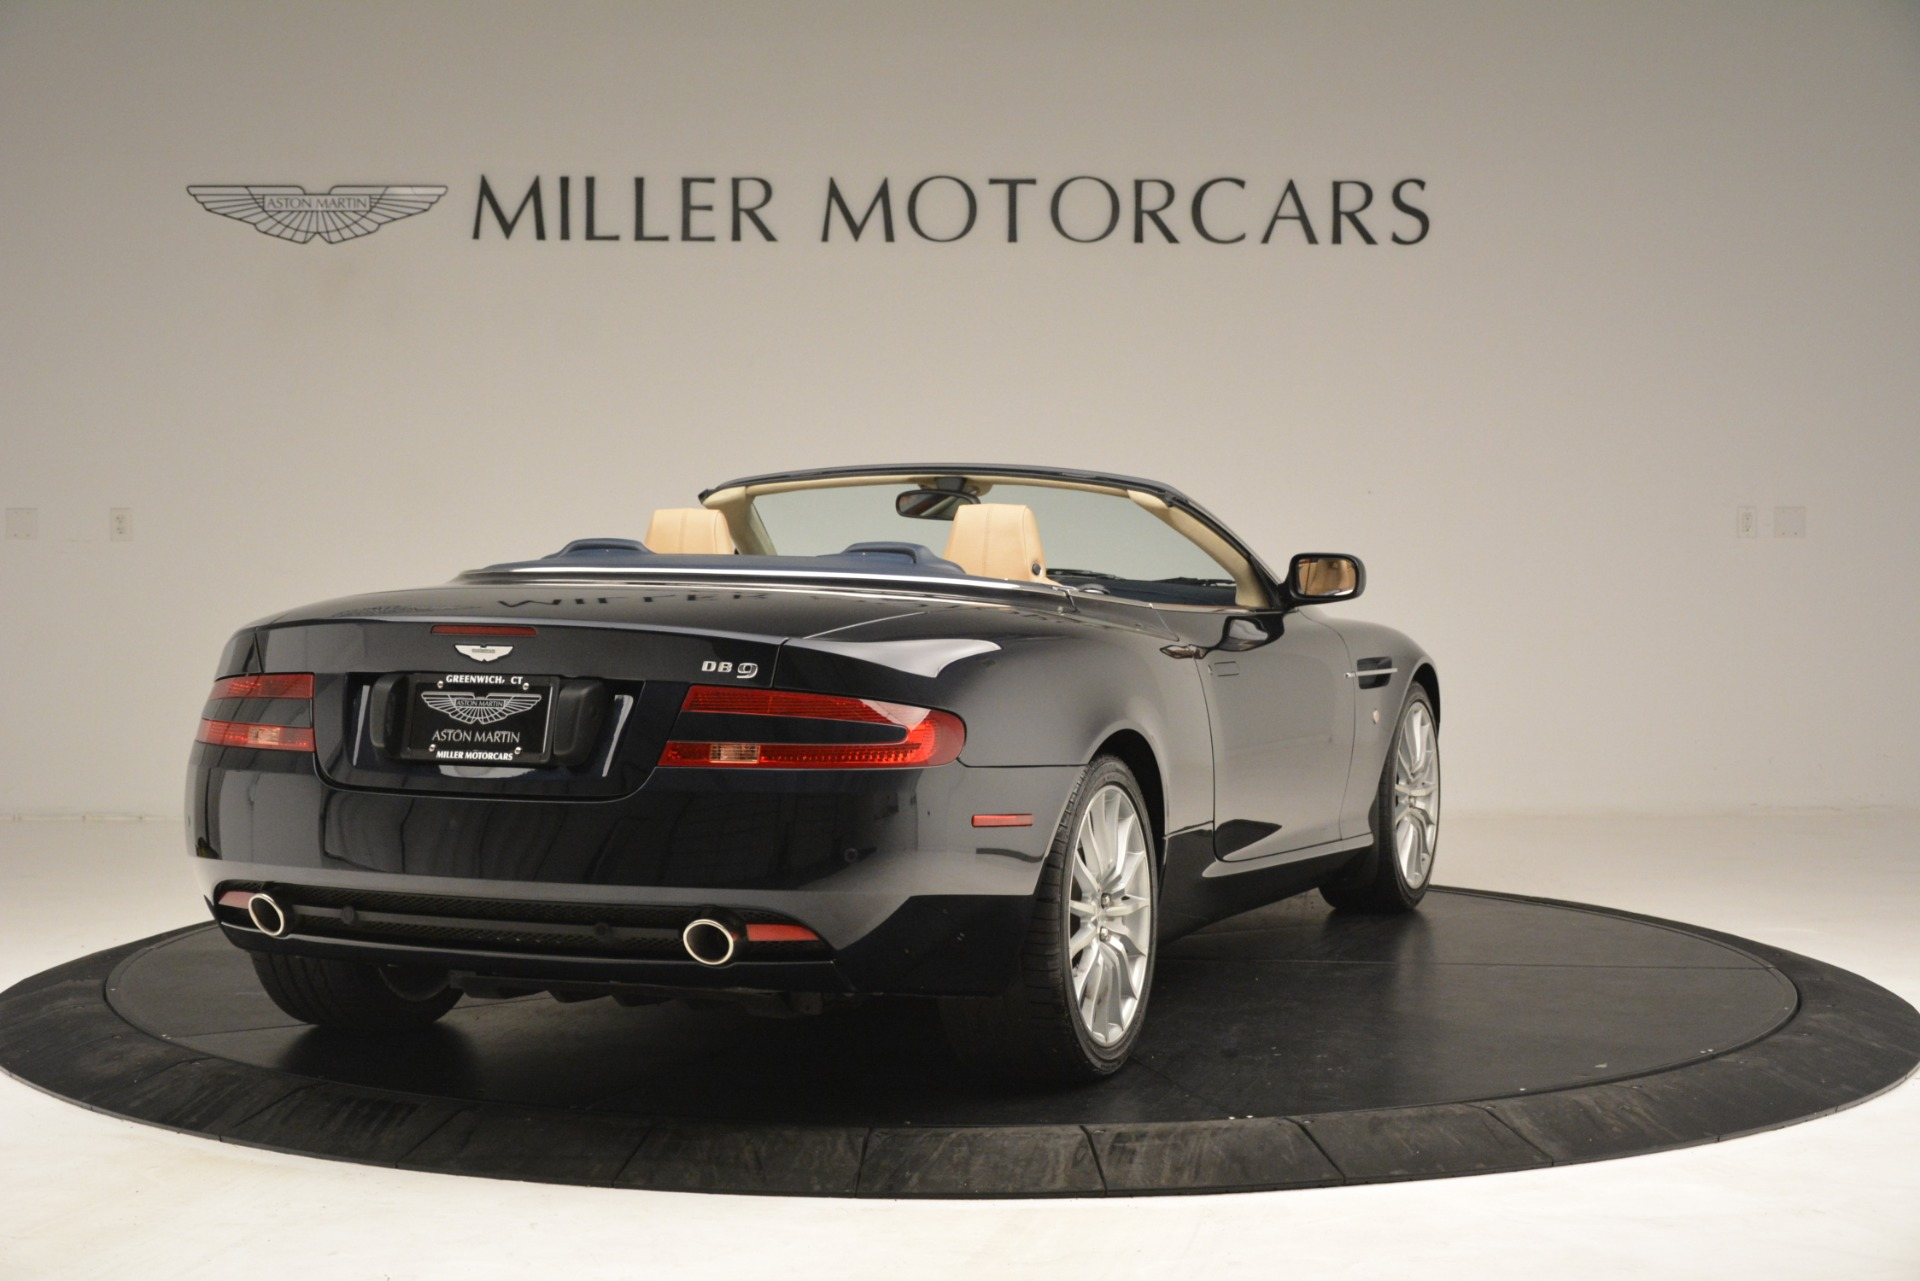 Used 2007 Aston Martin DB9 Convertible For Sale In Westport, CT 3291_p7